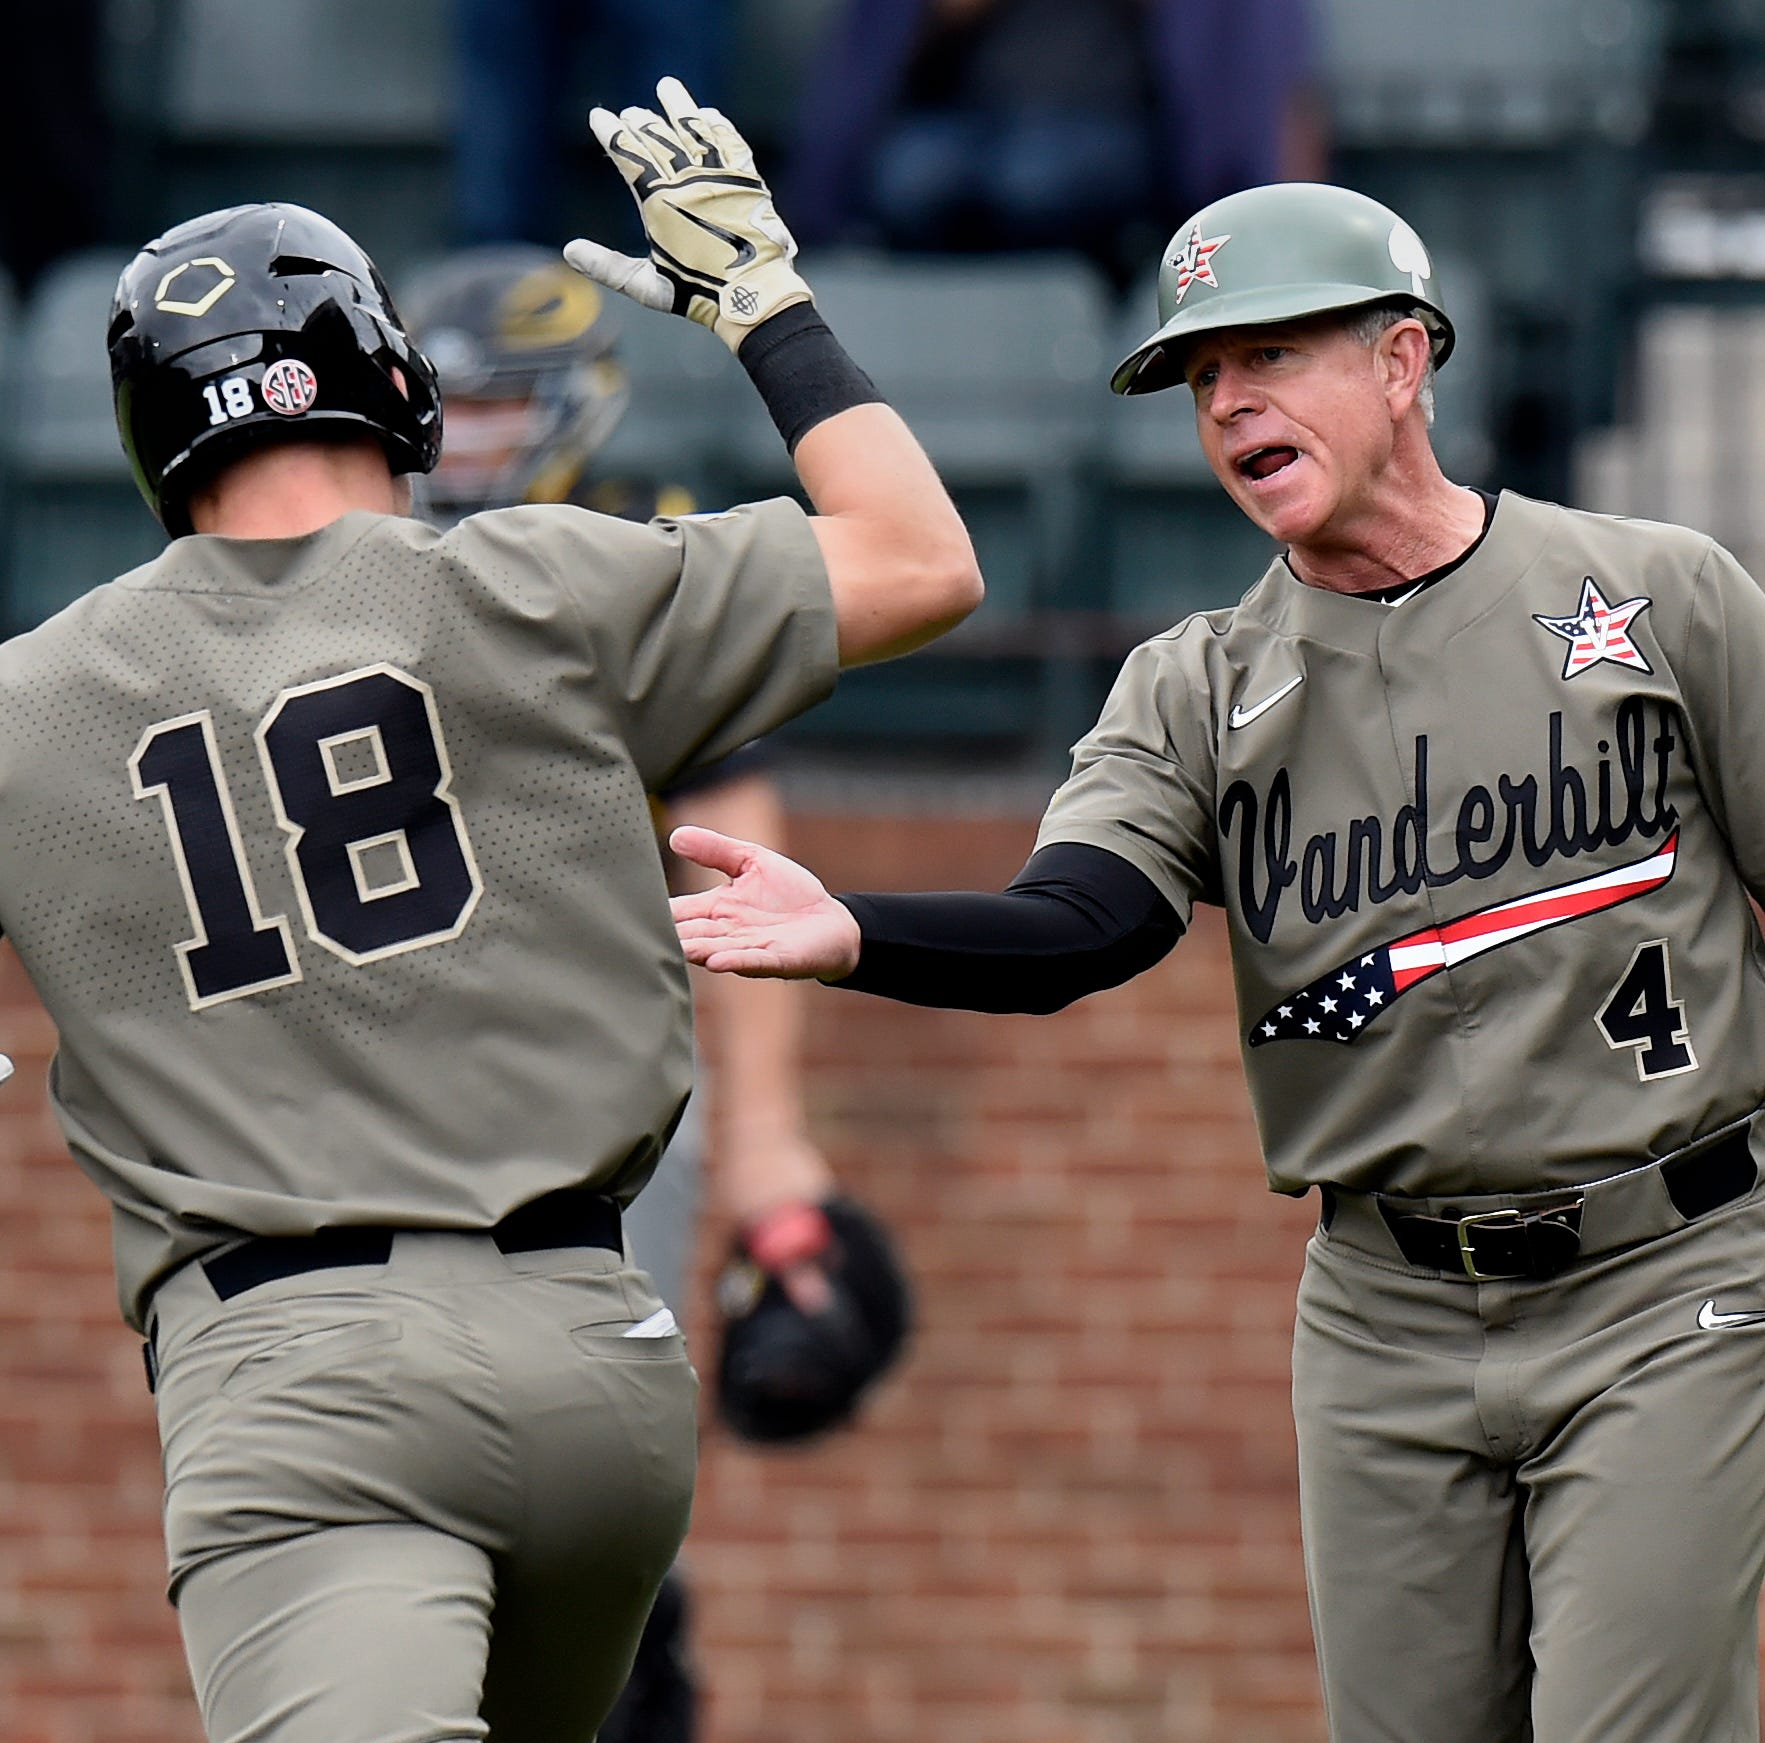 Vanderbilt baseball wins first SEC regular-season title since 2013